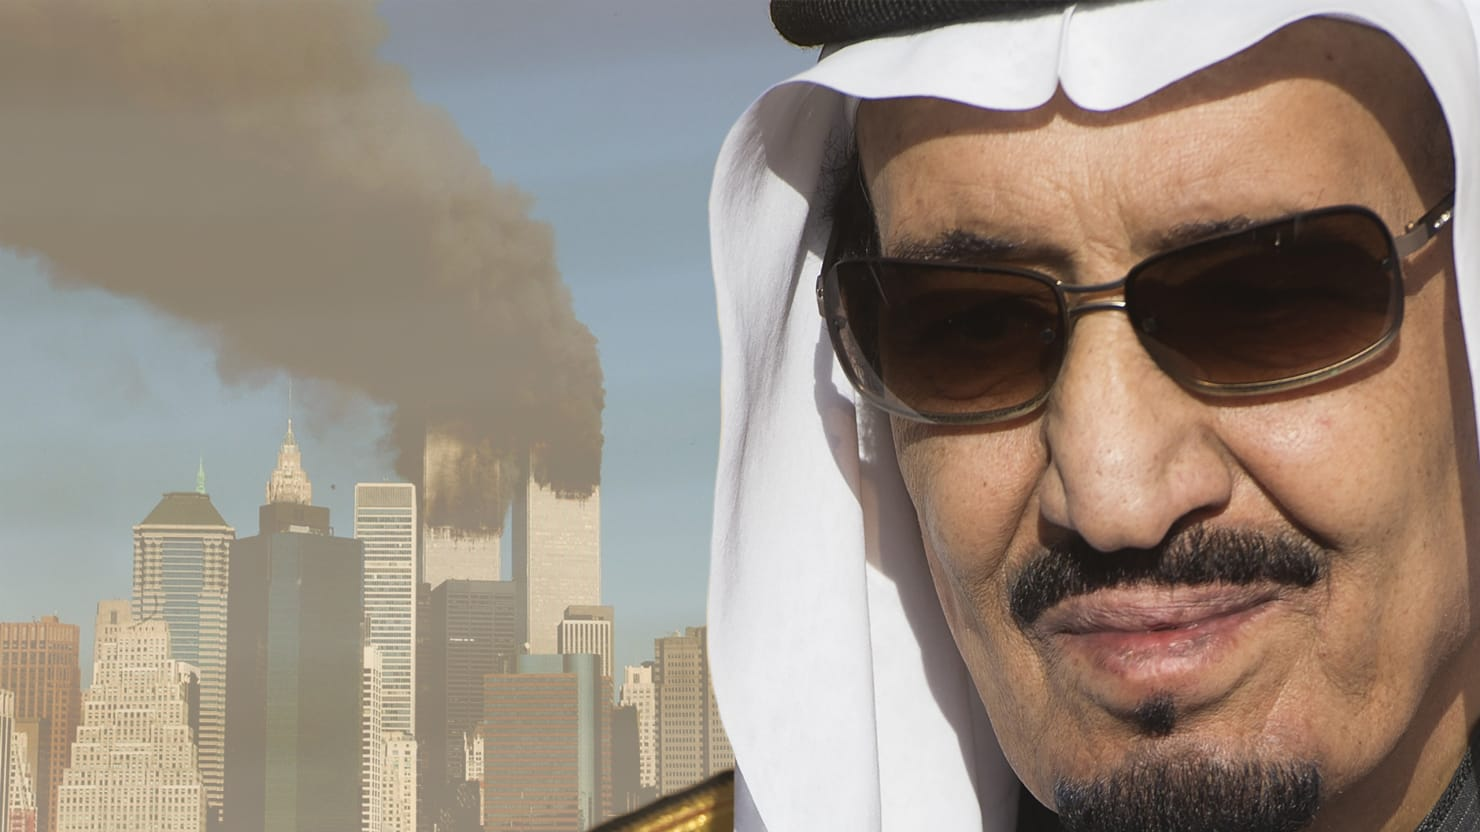 Pentagon: Don't Sue the Saudis for 9/11